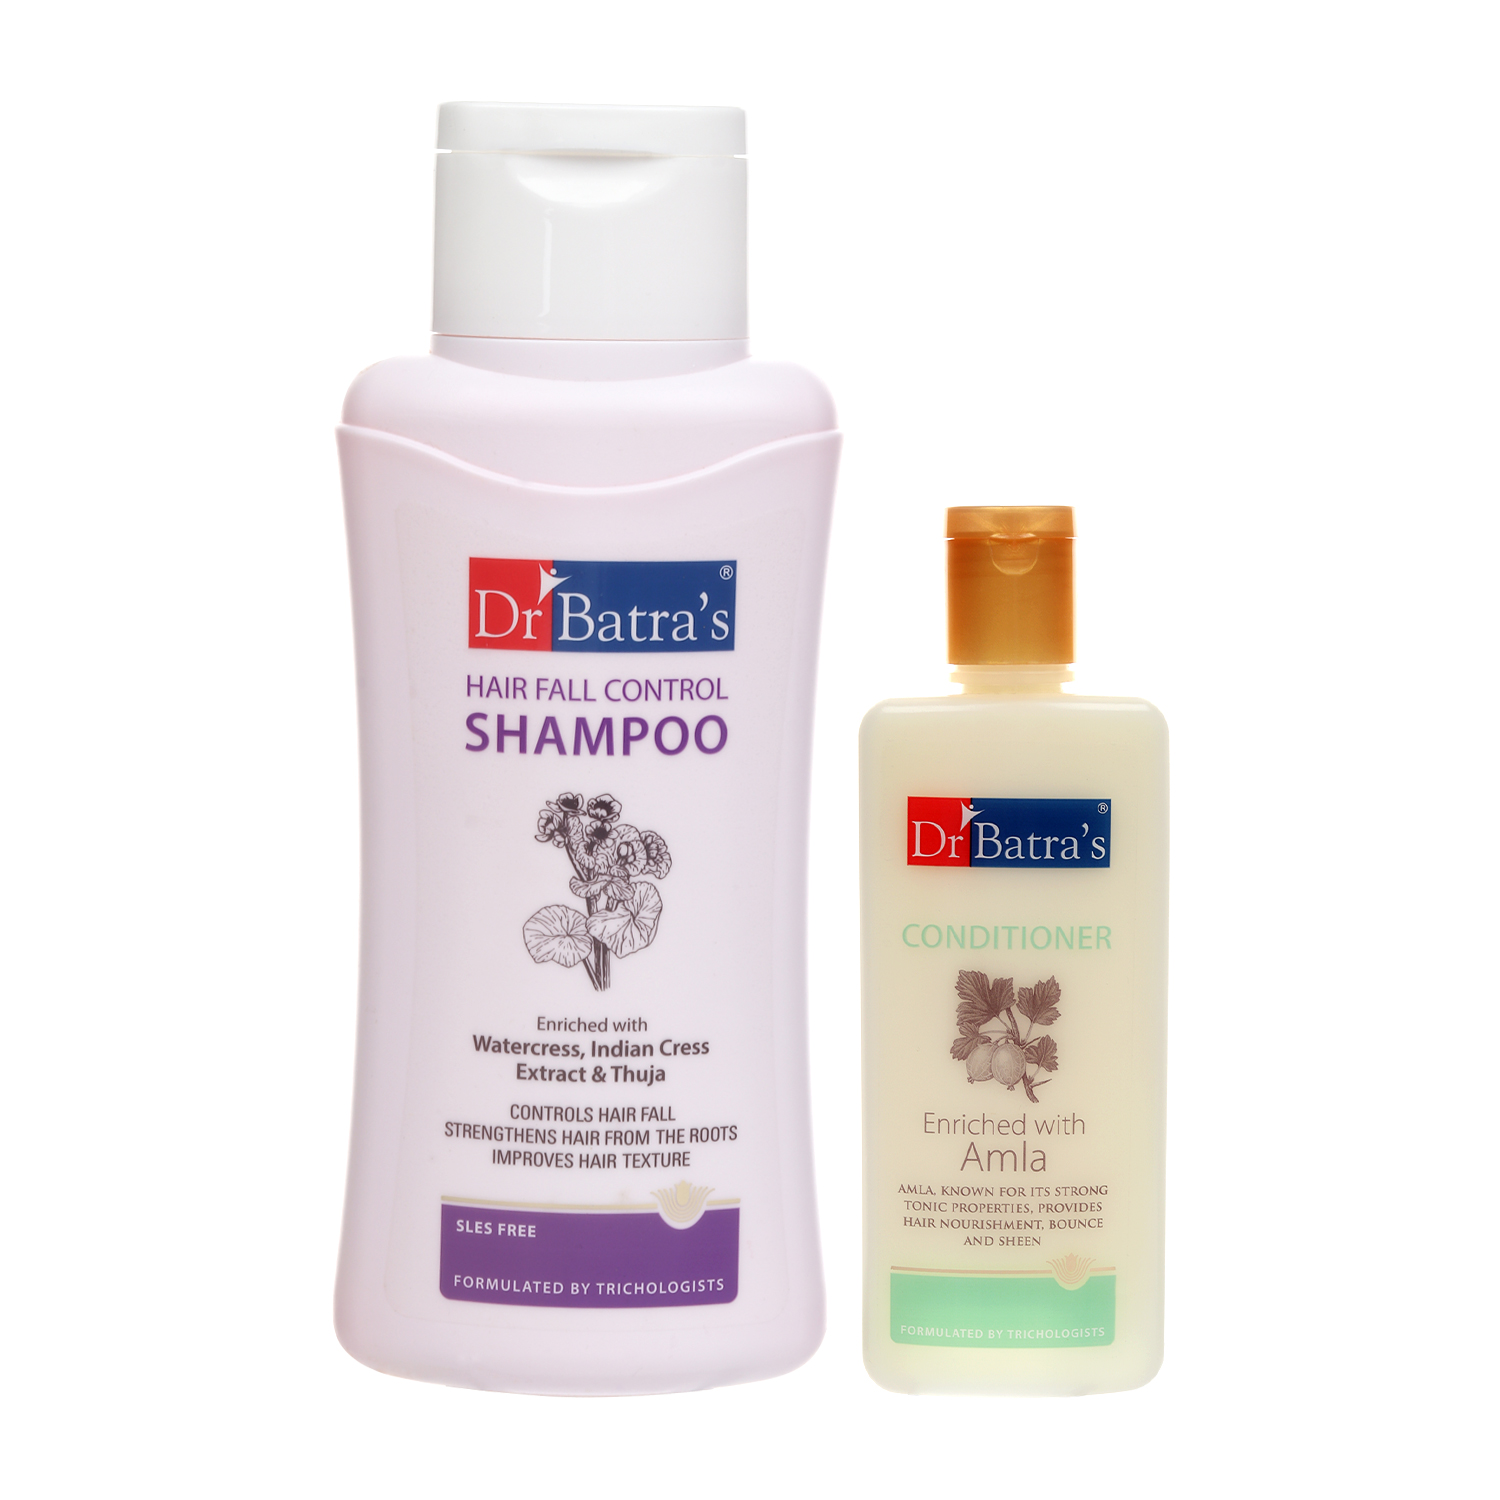 Dr Batra's | Dr Batra's Hair Fall Control Shampoo 500ml and Conditioner 200ml (Pack of 2 Men and Women)